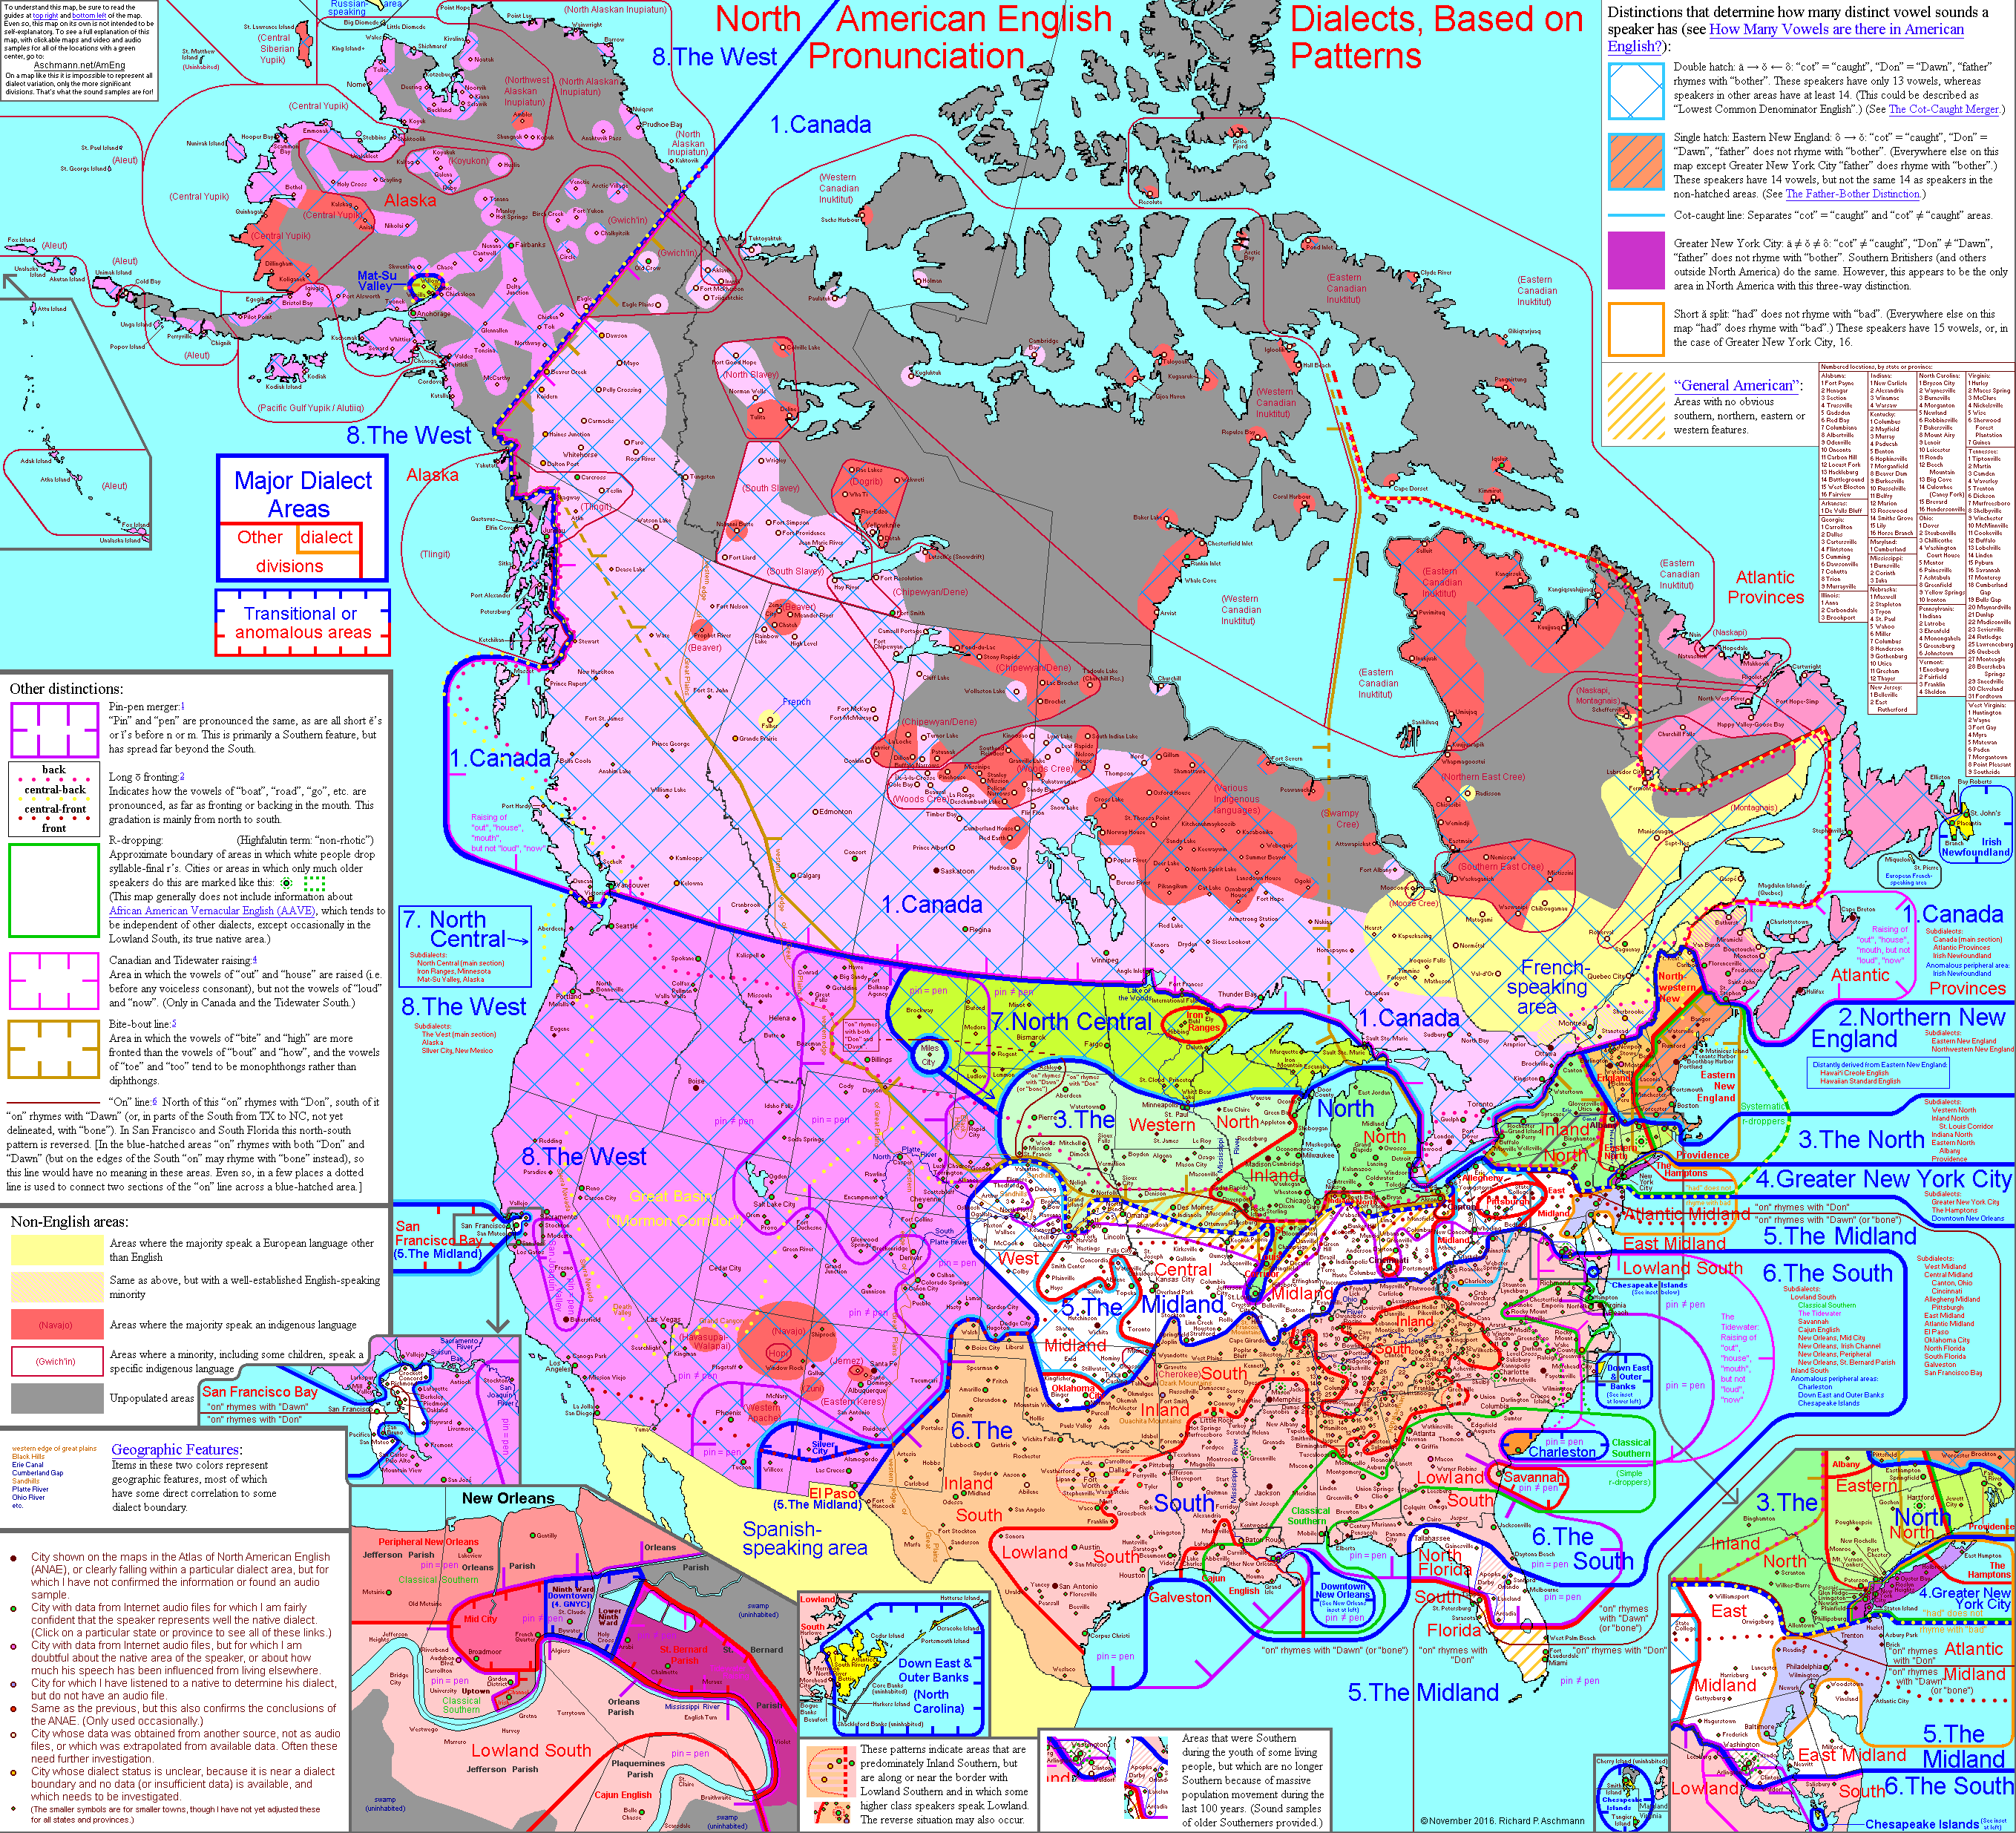 North american english dialects based on pronunciation patterns north american english dialects based on pronunciation patterns gumiabroncs Gallery